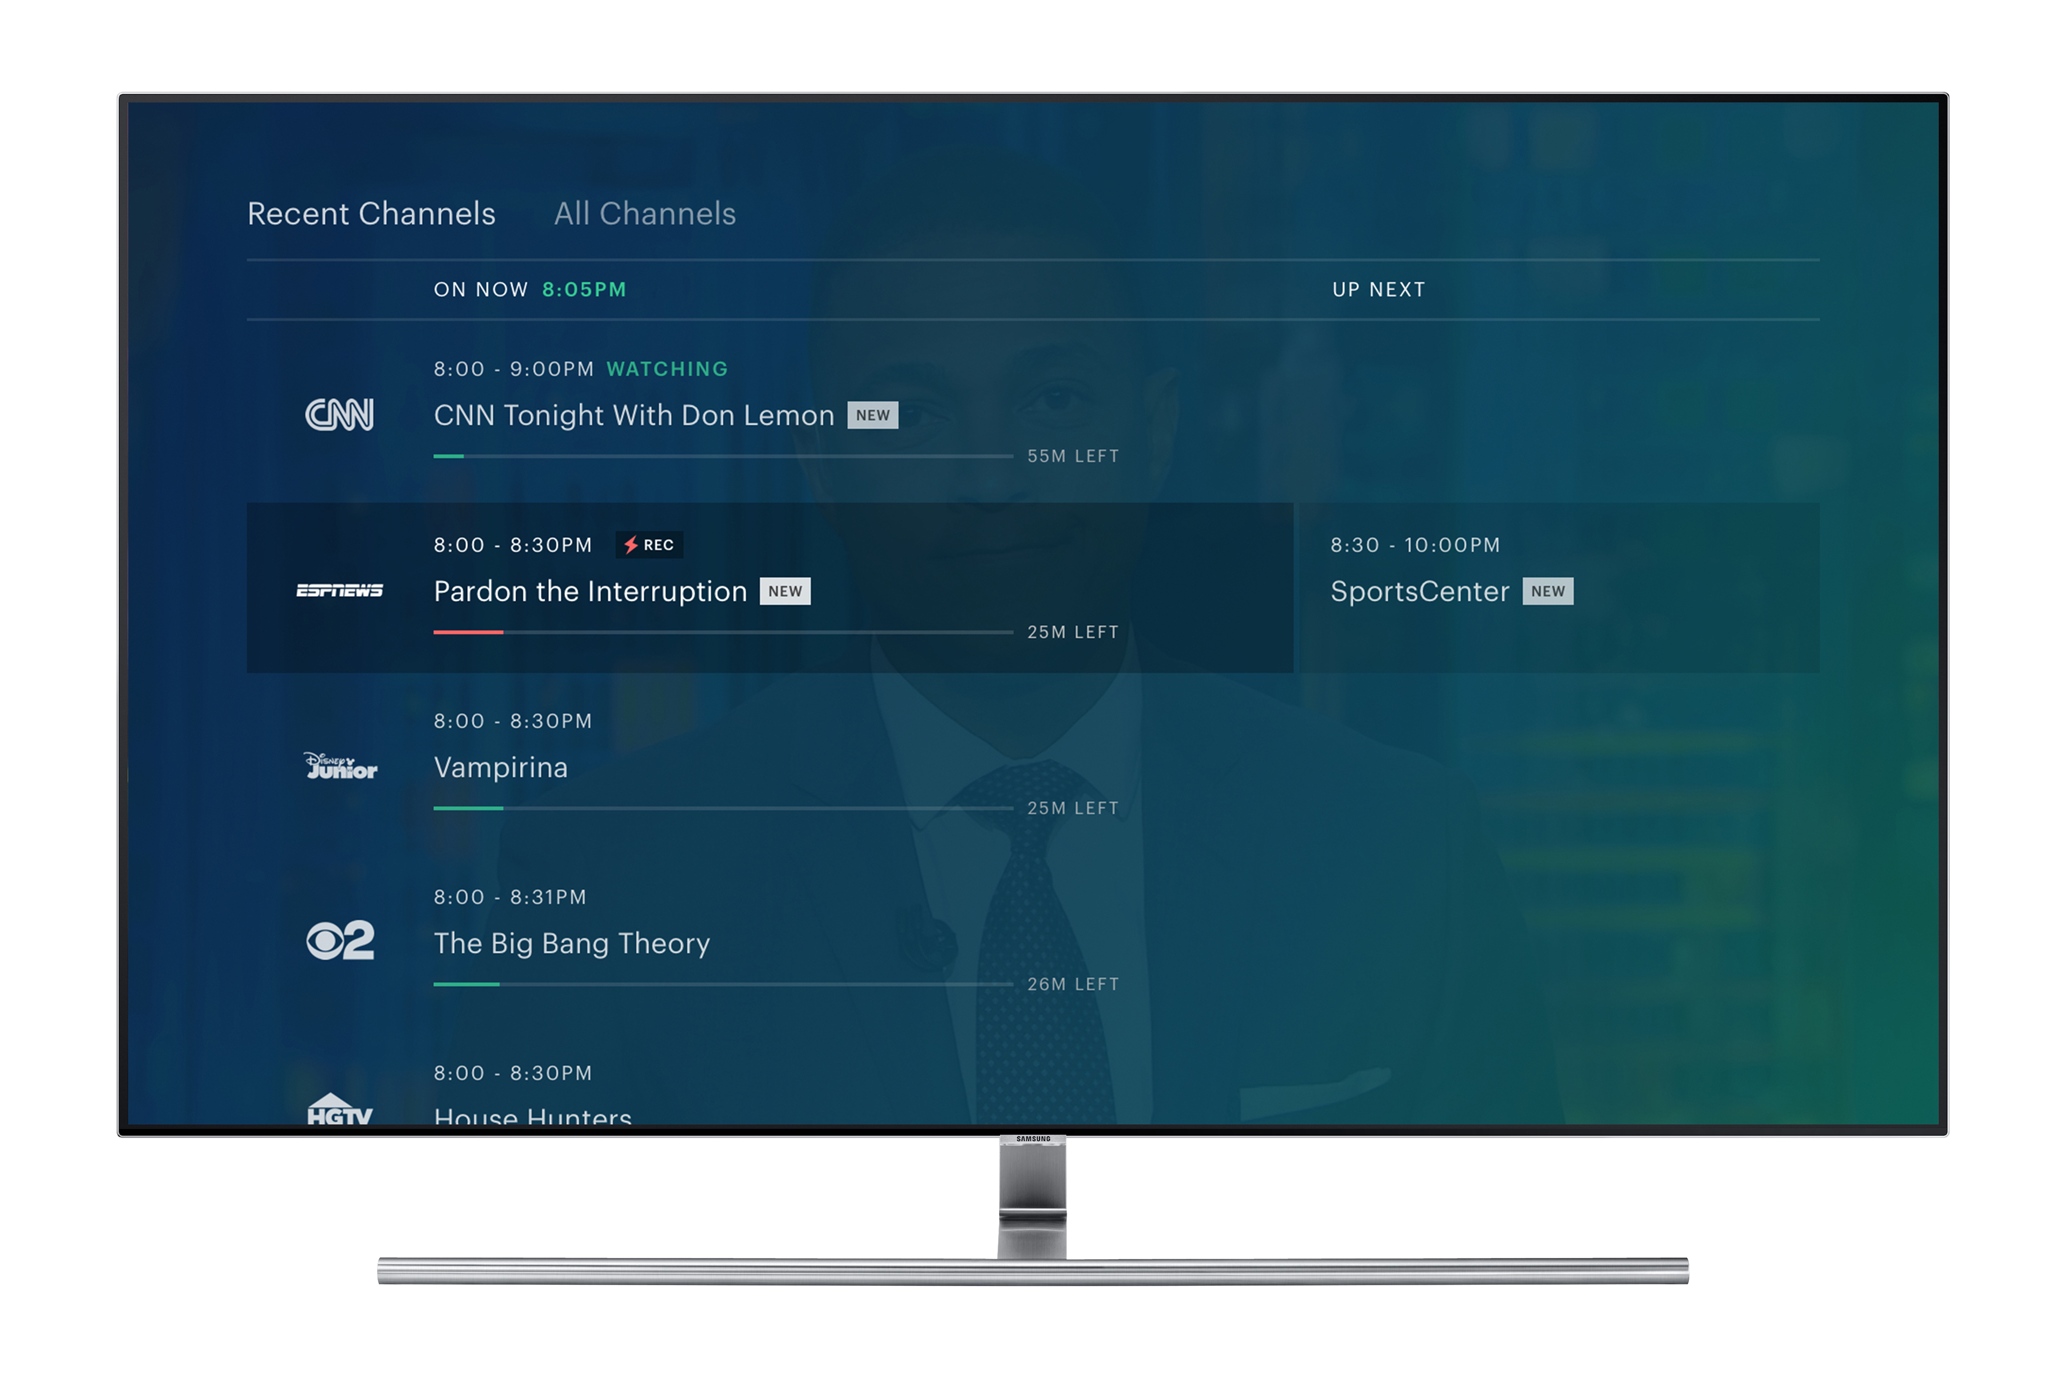 Hulu Launches Live TV Guide